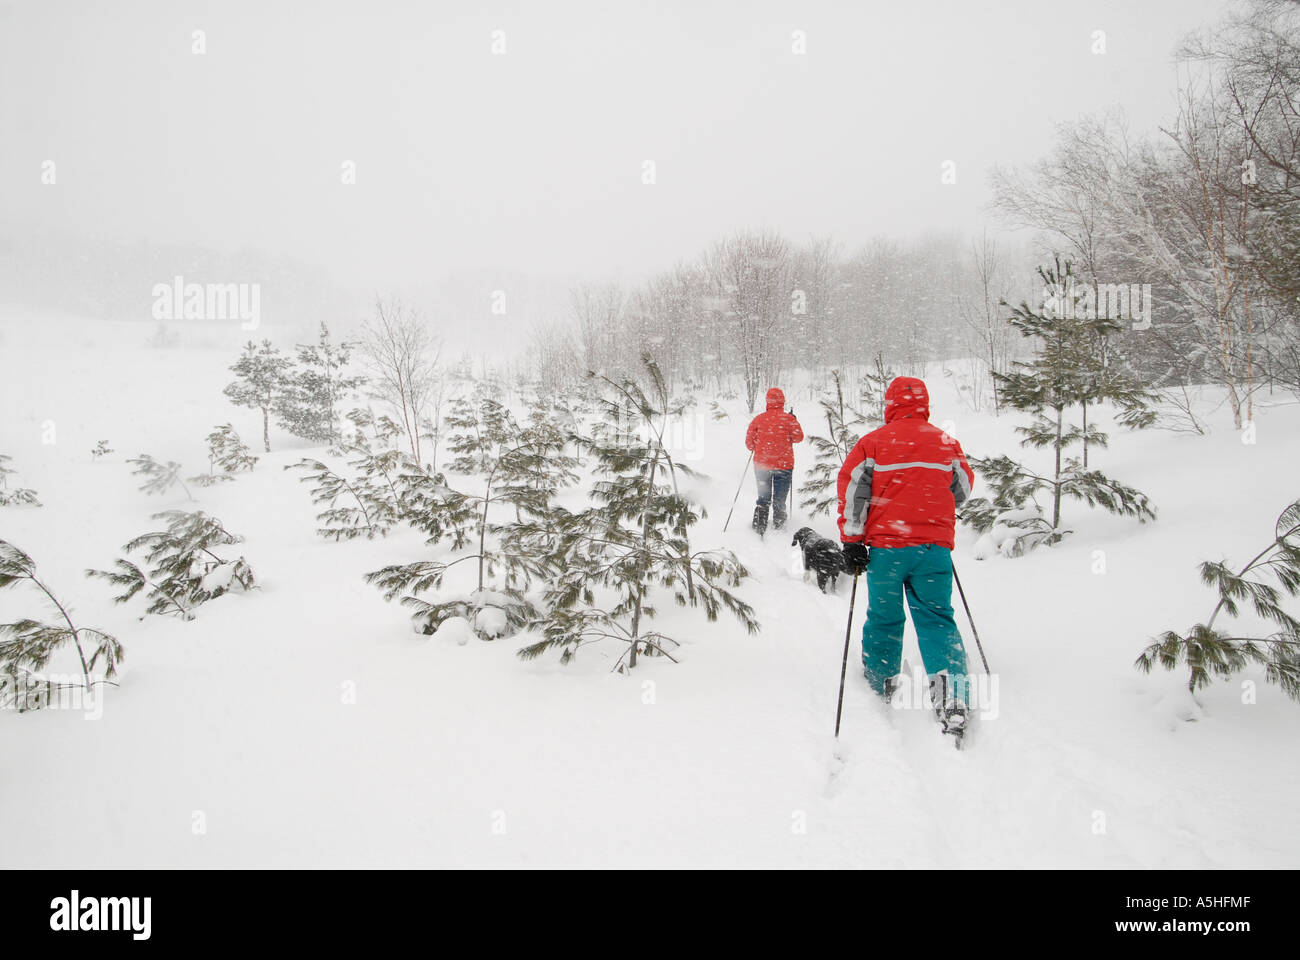 Winter landscape cross country skiing - Stock Image